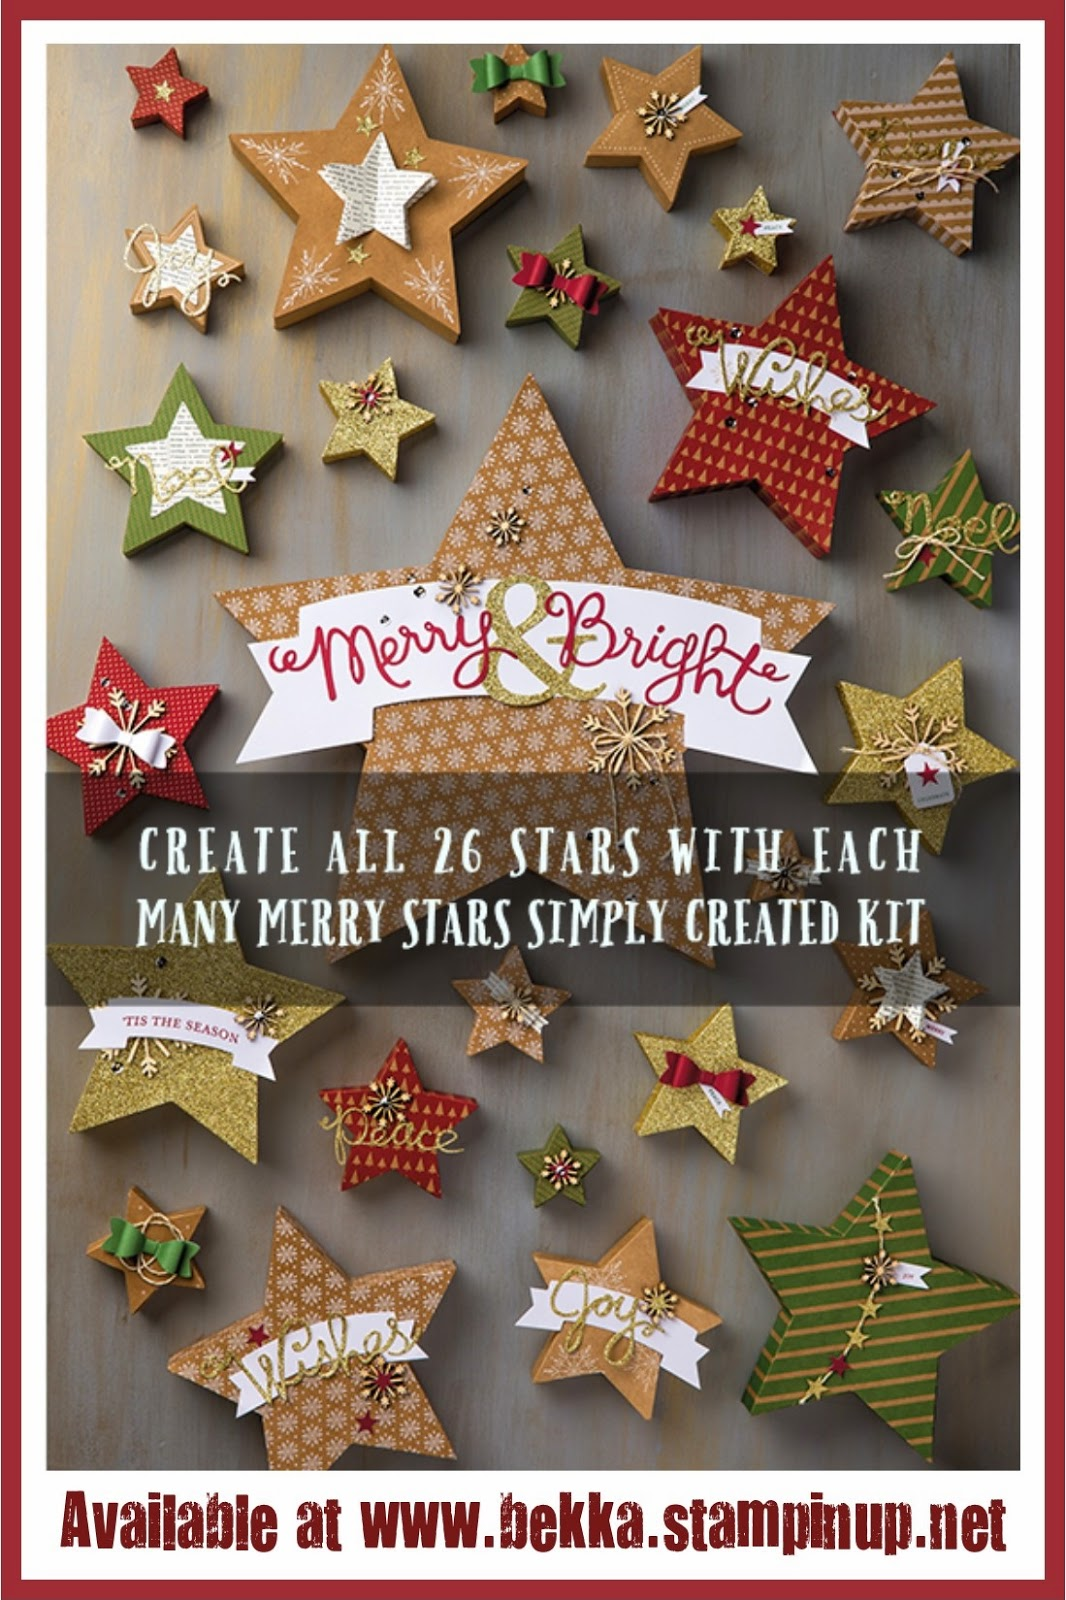 Fast Fabulous Christmas Craft Products available at www.bekka.stampinup.net